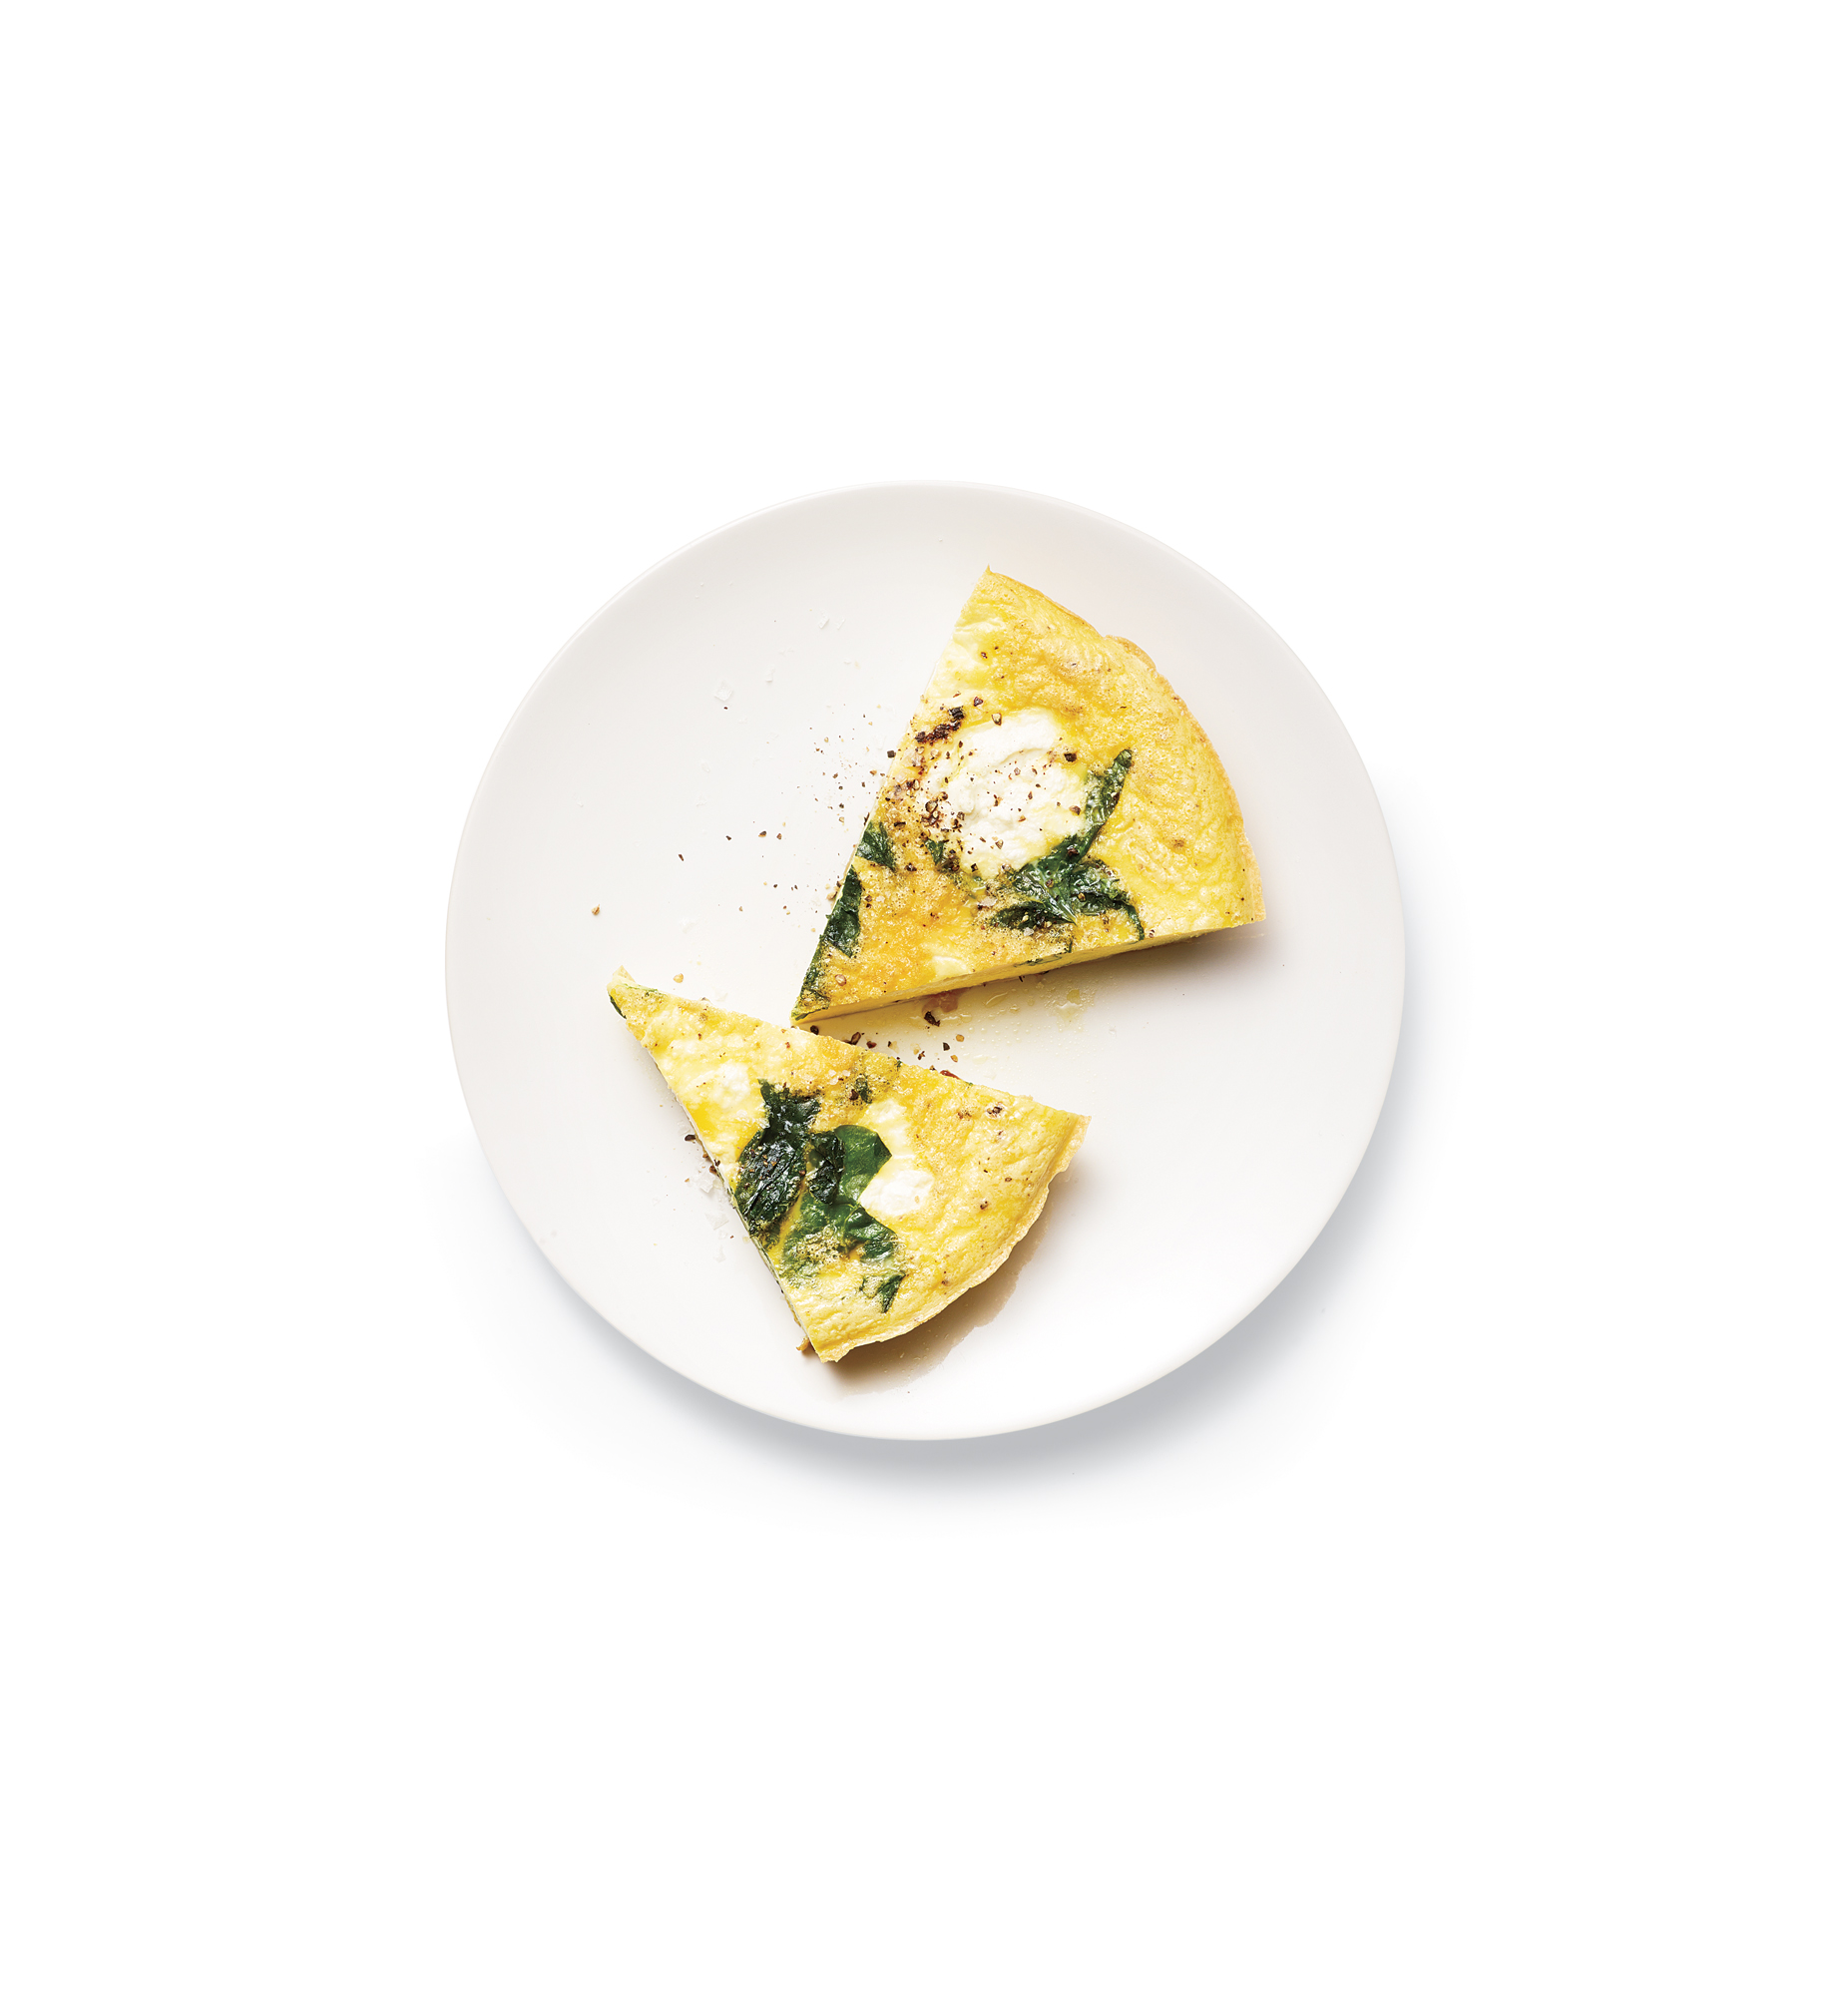 Chard and Ricotta Frittata